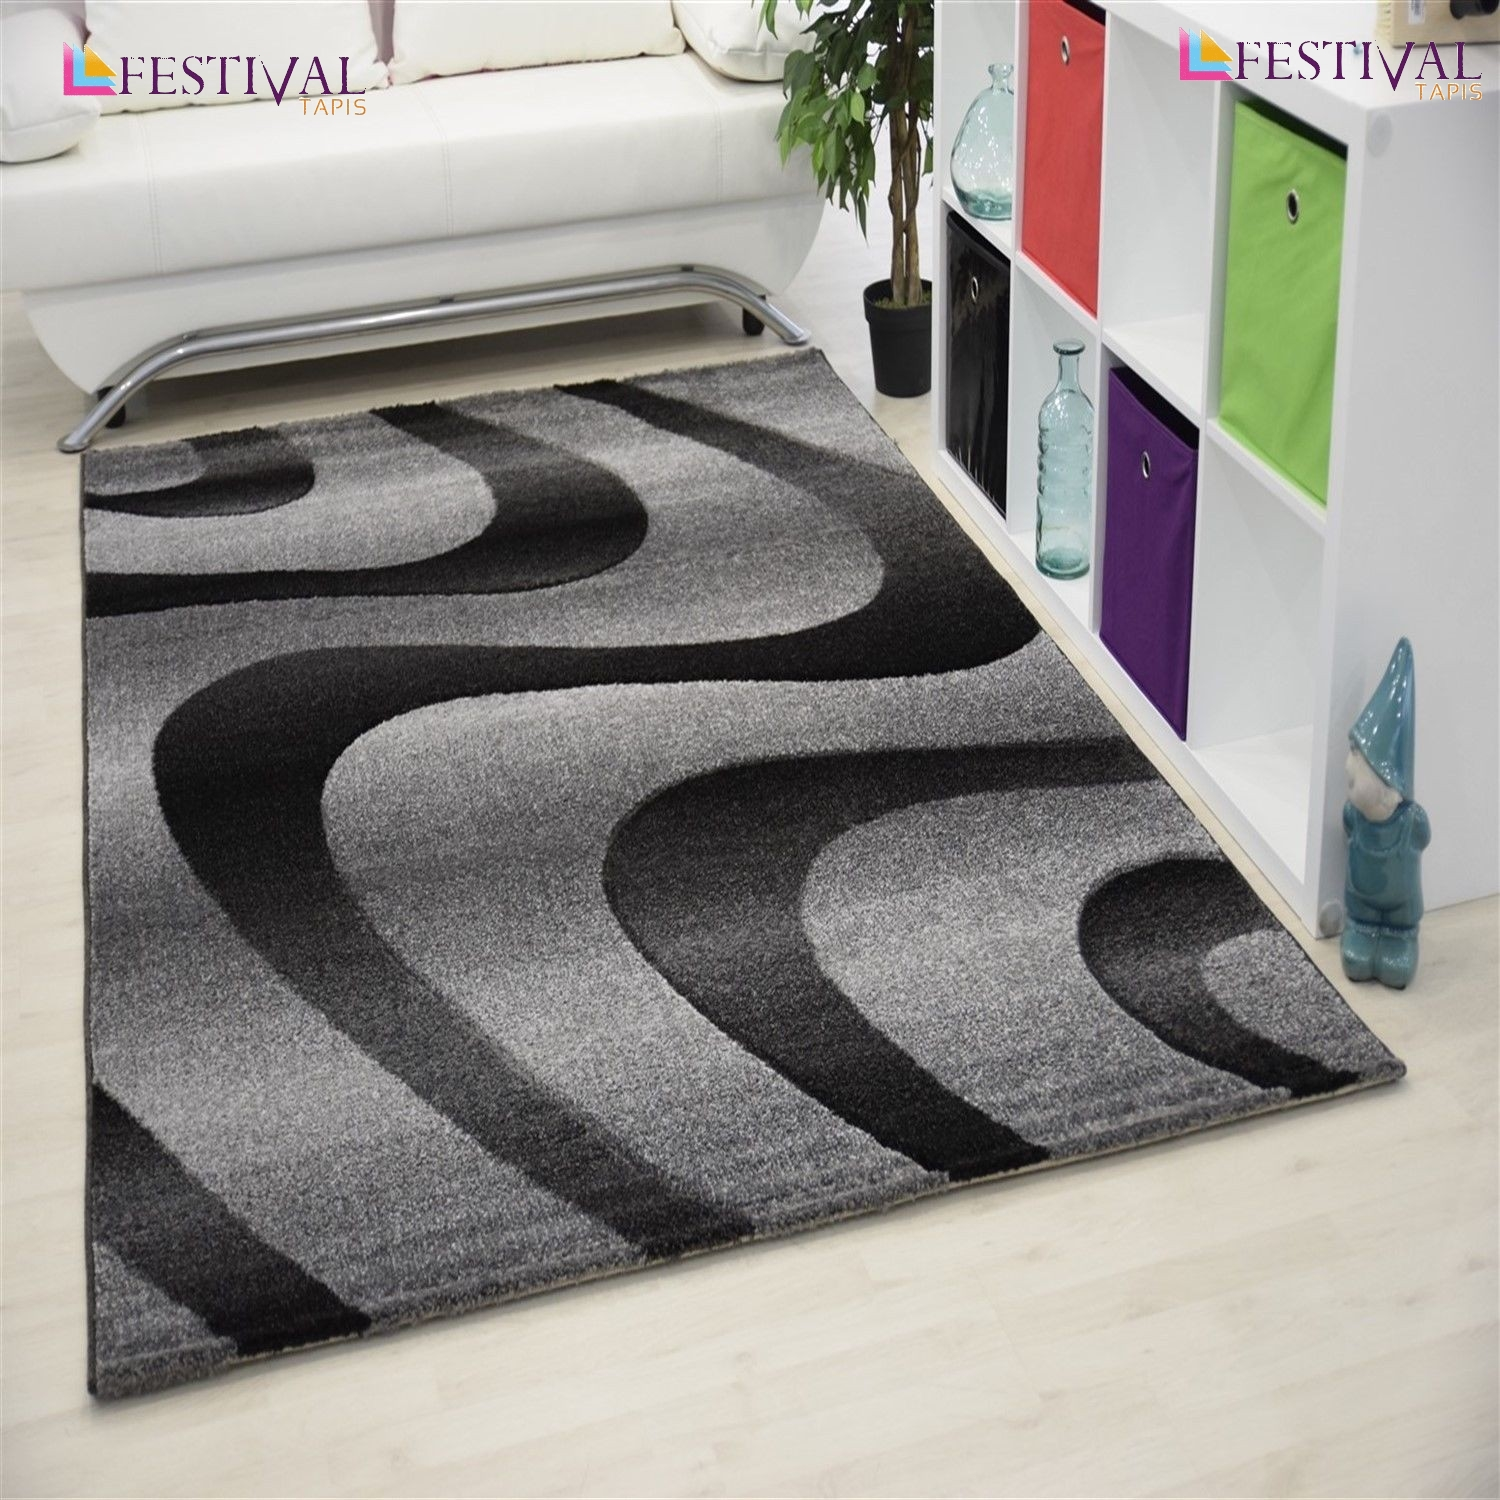 Carrelage Design Grand Tapis De Salon Moderne Design Pour Carrelage De Sol Et Rev Tement De